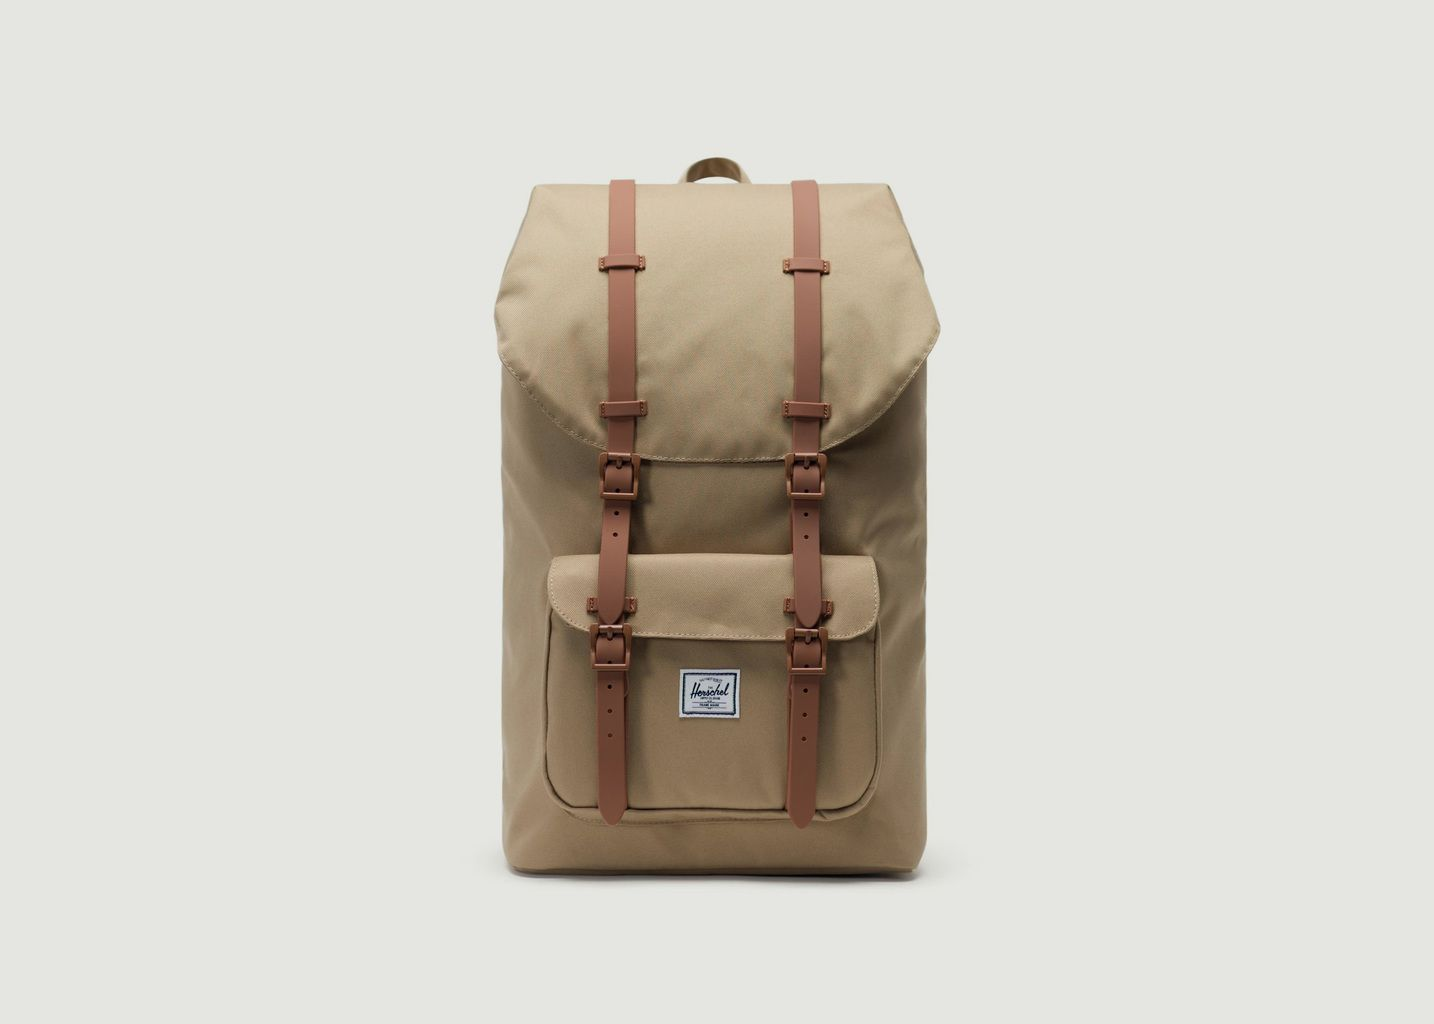 fca8ca8594b Sac à Dos Little America Beige Herschel Supply Studio